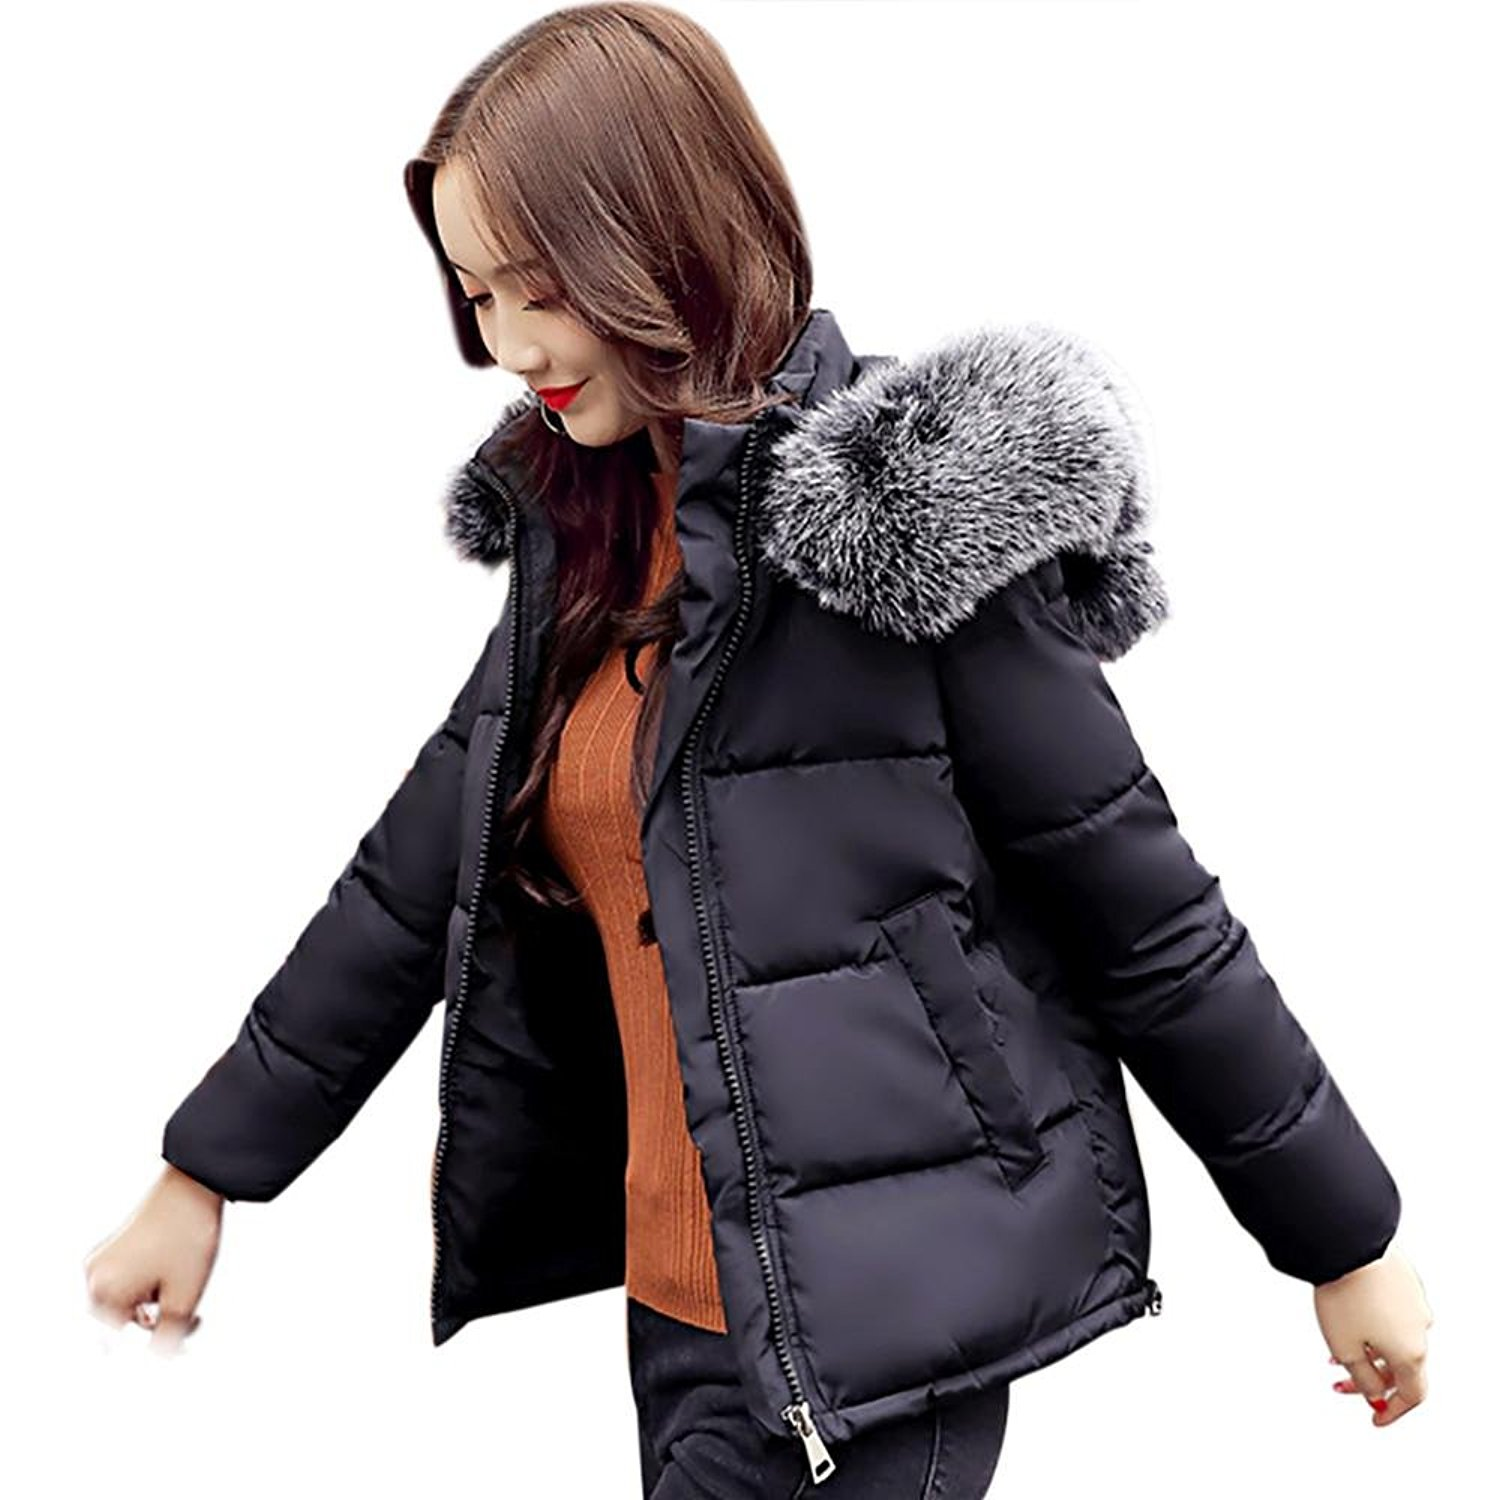 Dingji Women Casual Thicker Winter Warm Lammy Jacket Short Coat Overcoat Outwear